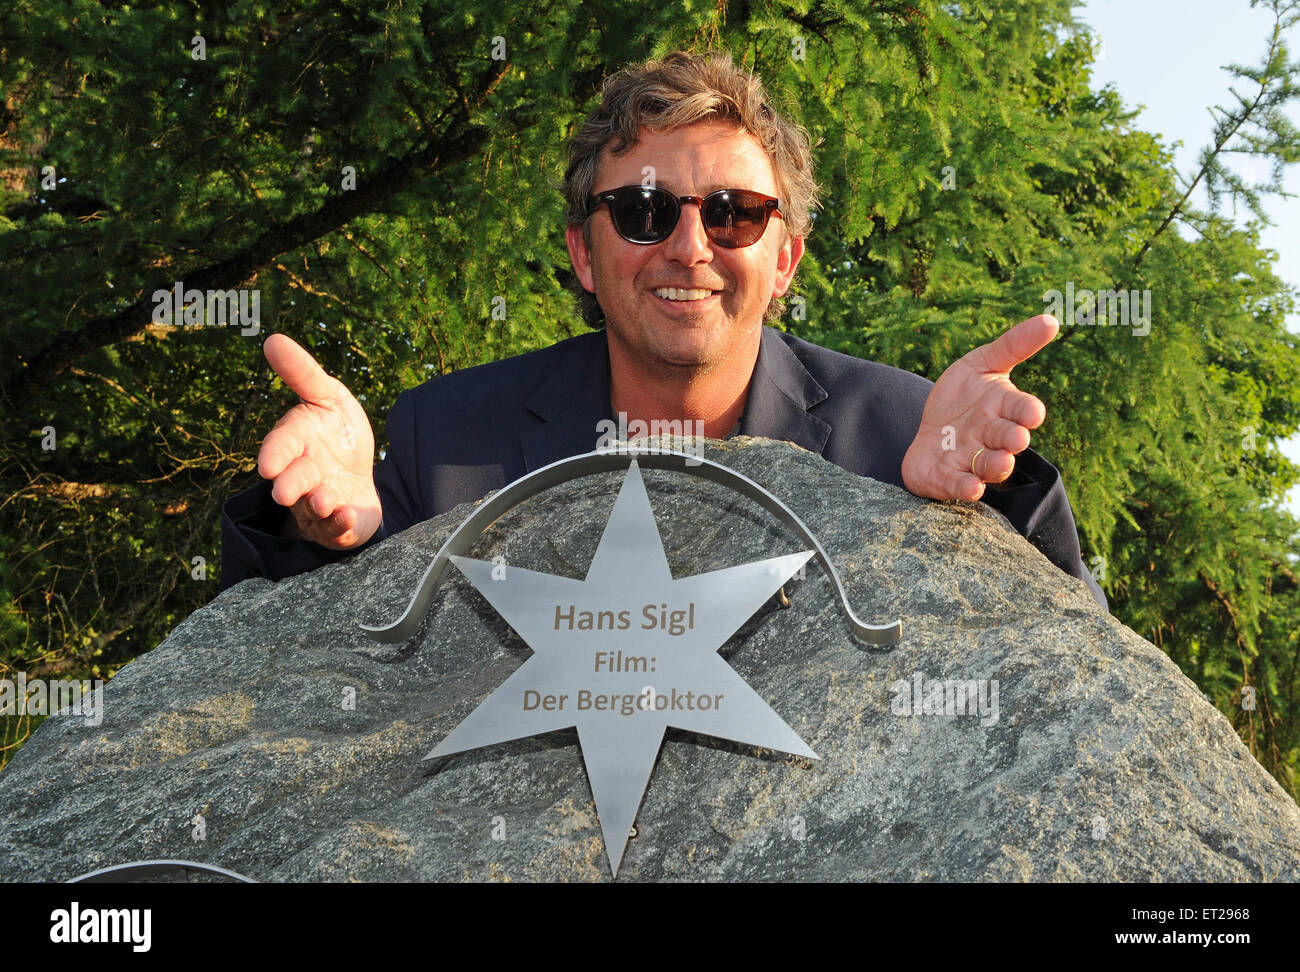 Ellmau, Austria. 10th June, 2015. Actor Hans Sigl is to be honored with the Kaiserstern award in Ellmau, Austria, - Stock Image